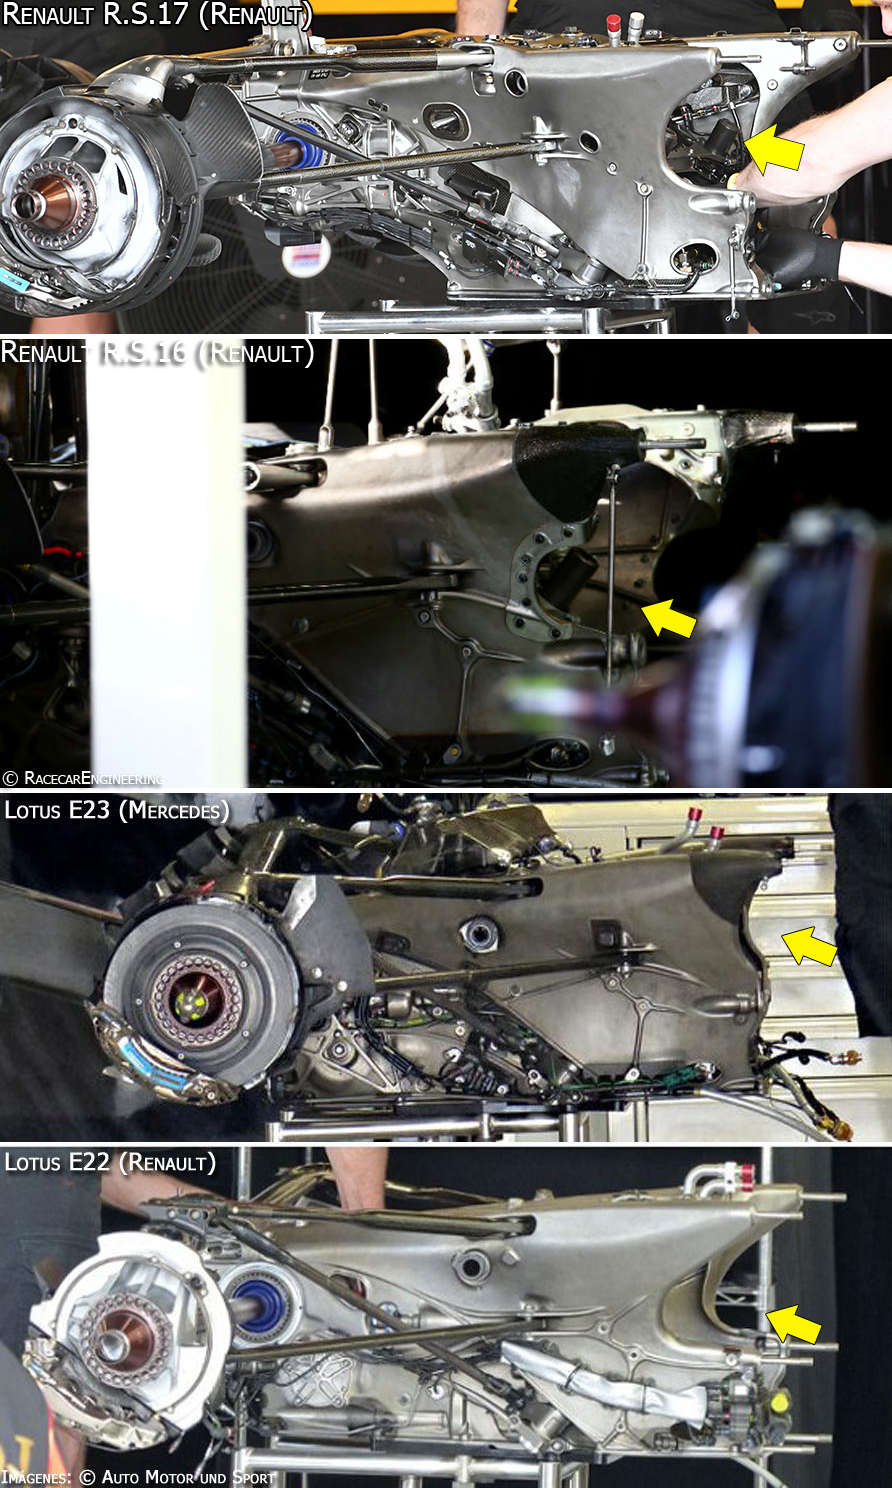 rs17-gearbox(2)